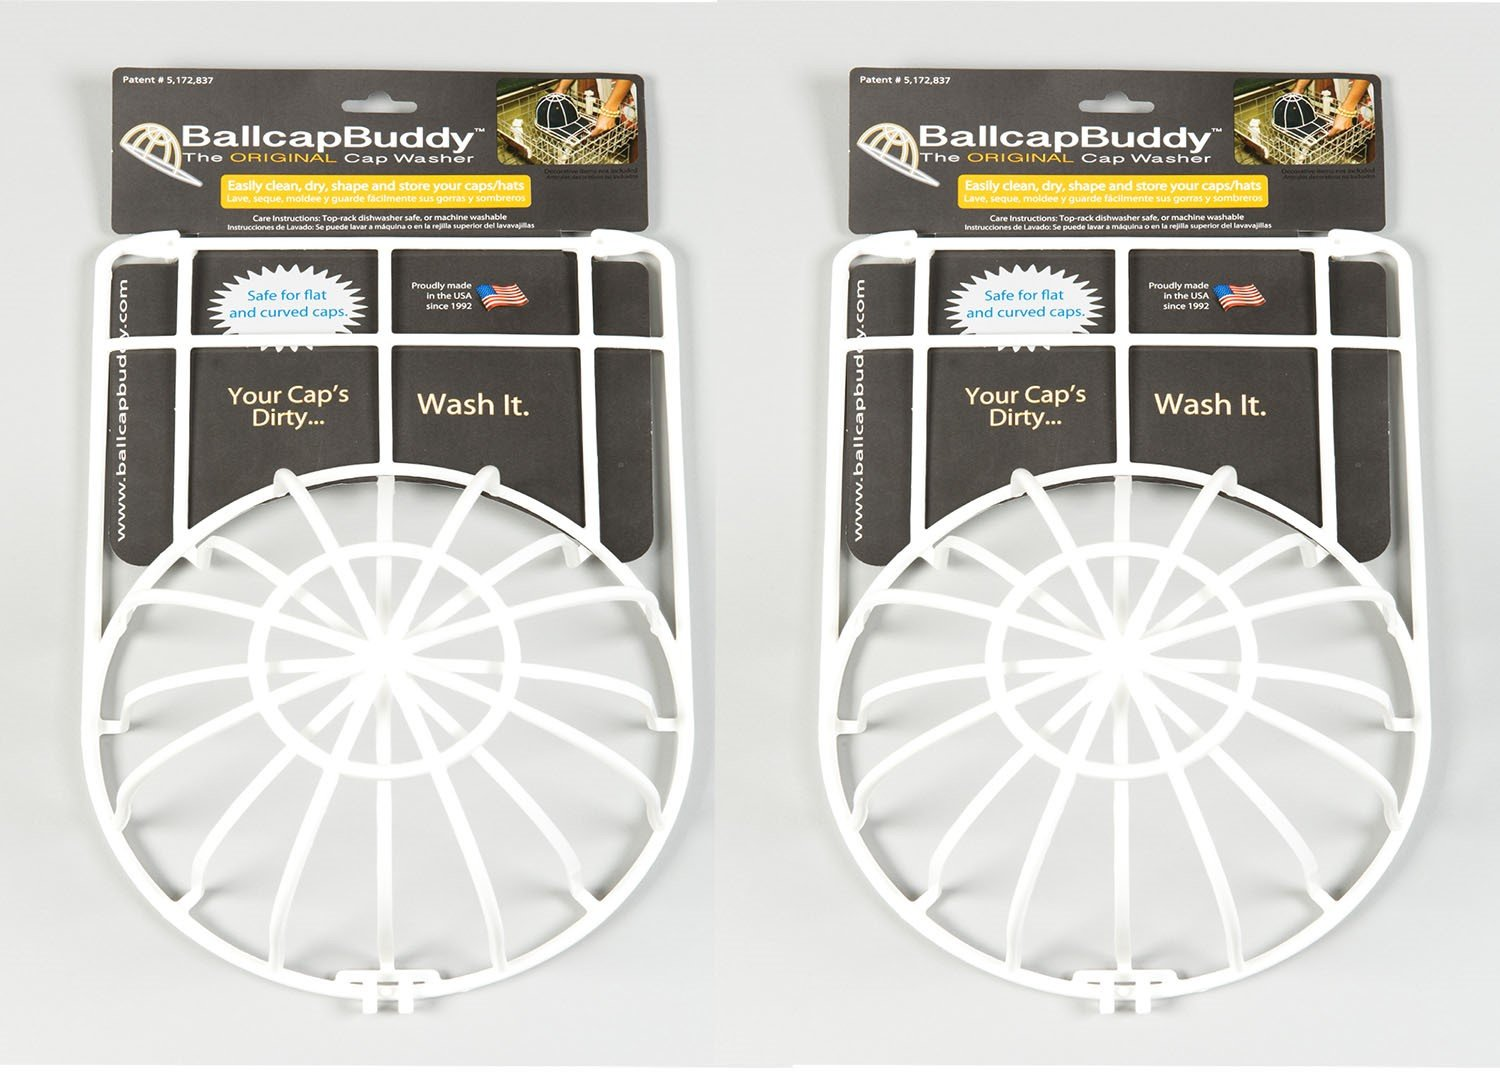 Ballcap Buddy Cap Washer-Hat Washer-Baseball cap cleaner 2-pack white. Endorsed by SHARK TANK and As Seen on TV PRO by BallcapBuddy